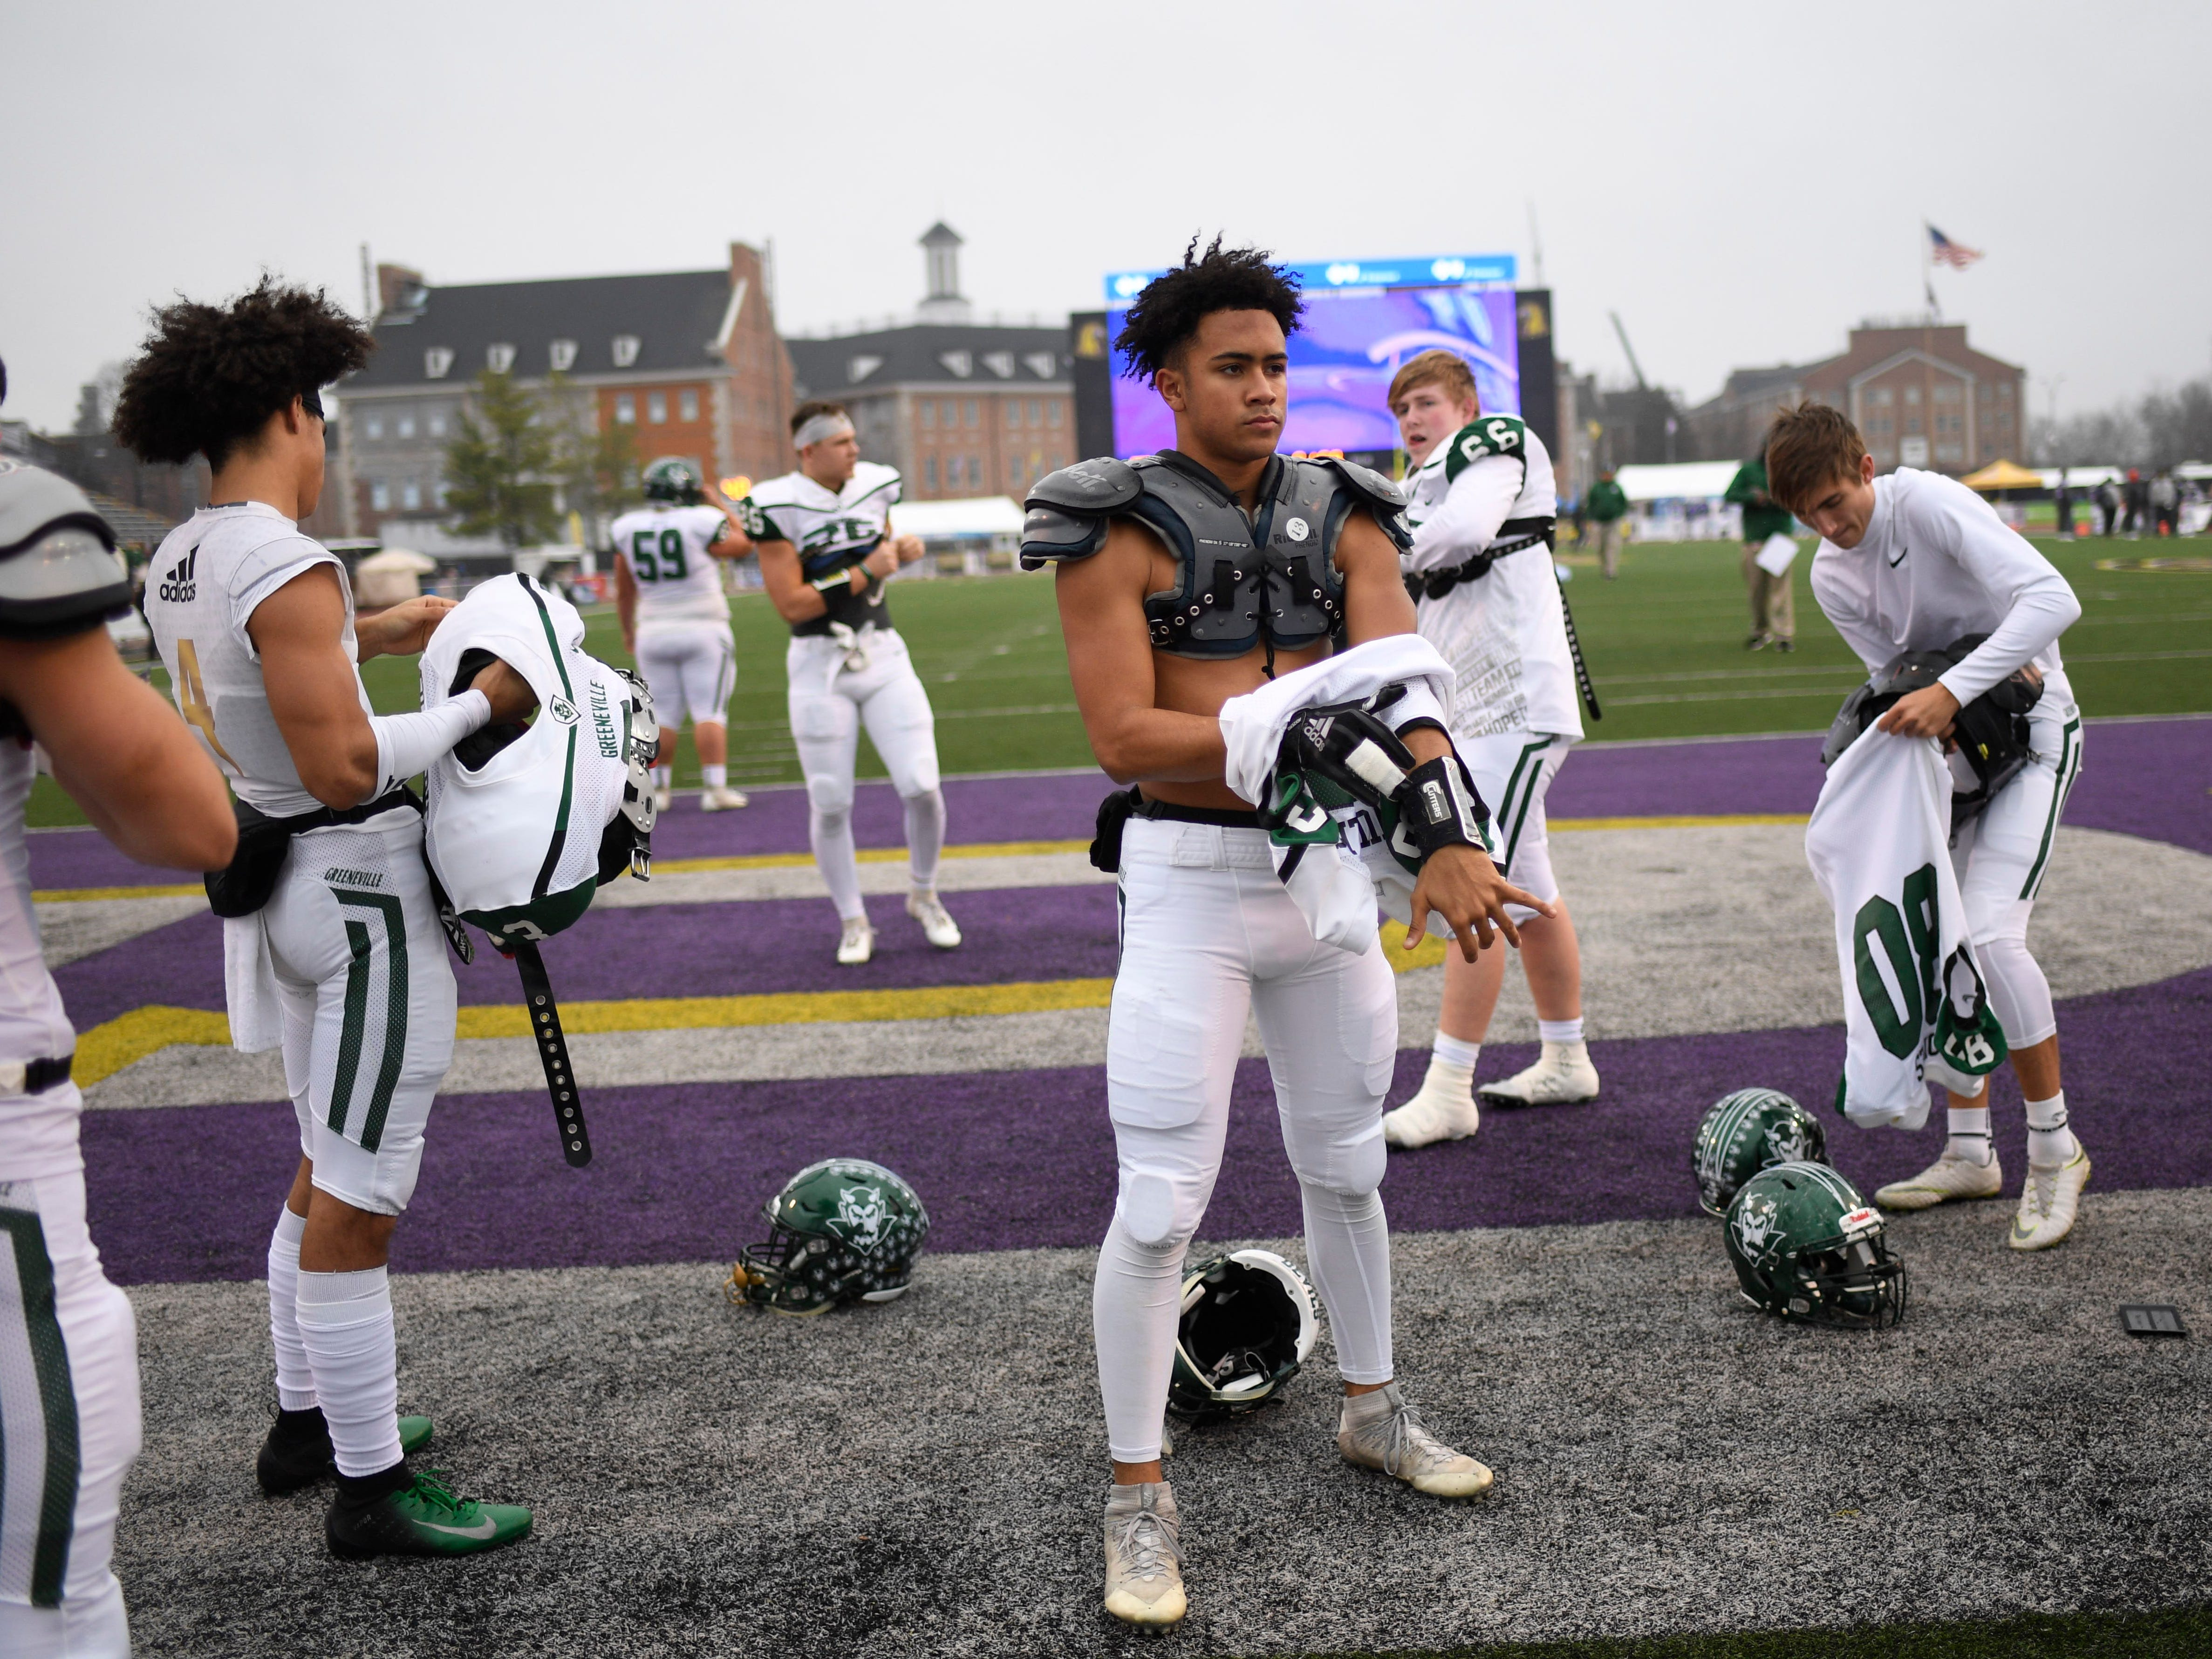 Greeneville players dress for the Class 4A BlueCross Bowl state championship at Tennessee Tech's Tucker Stadium in Cookeville, Tenn., on Thursday, Nov. 29, 2018.